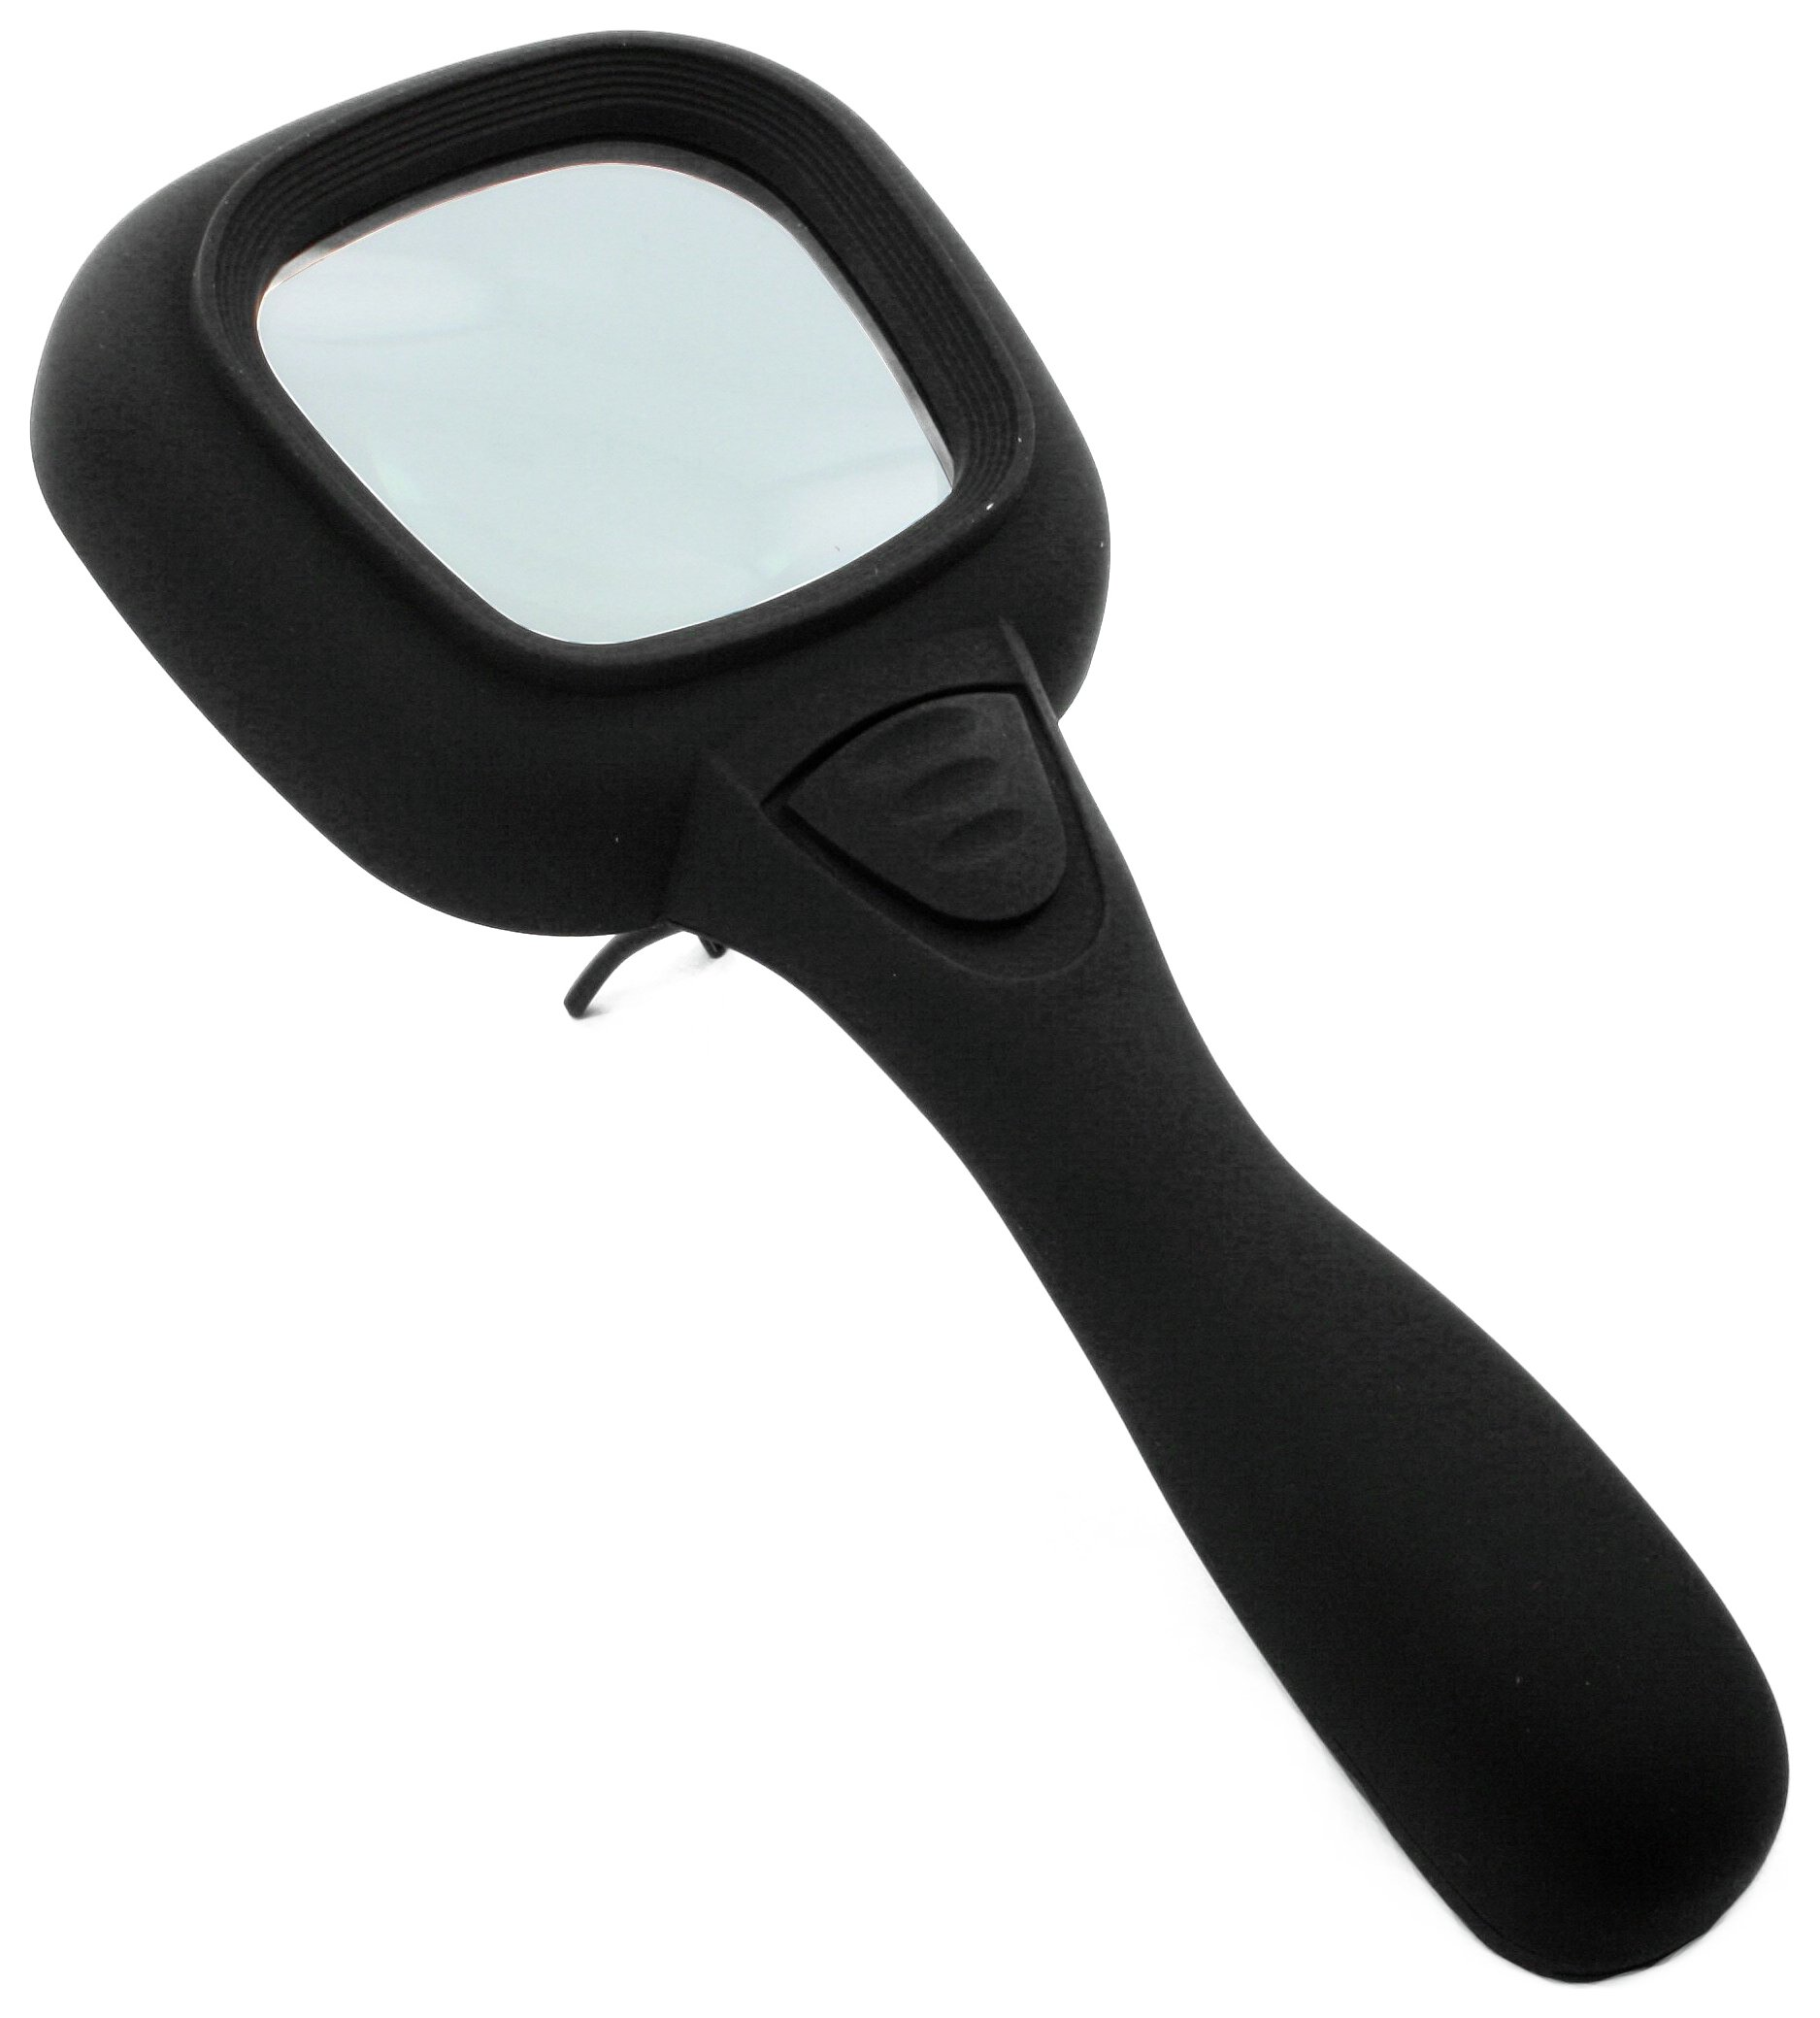 Image of Lightcraft LC1901 LED x4 Handheld Magnifier with Stand